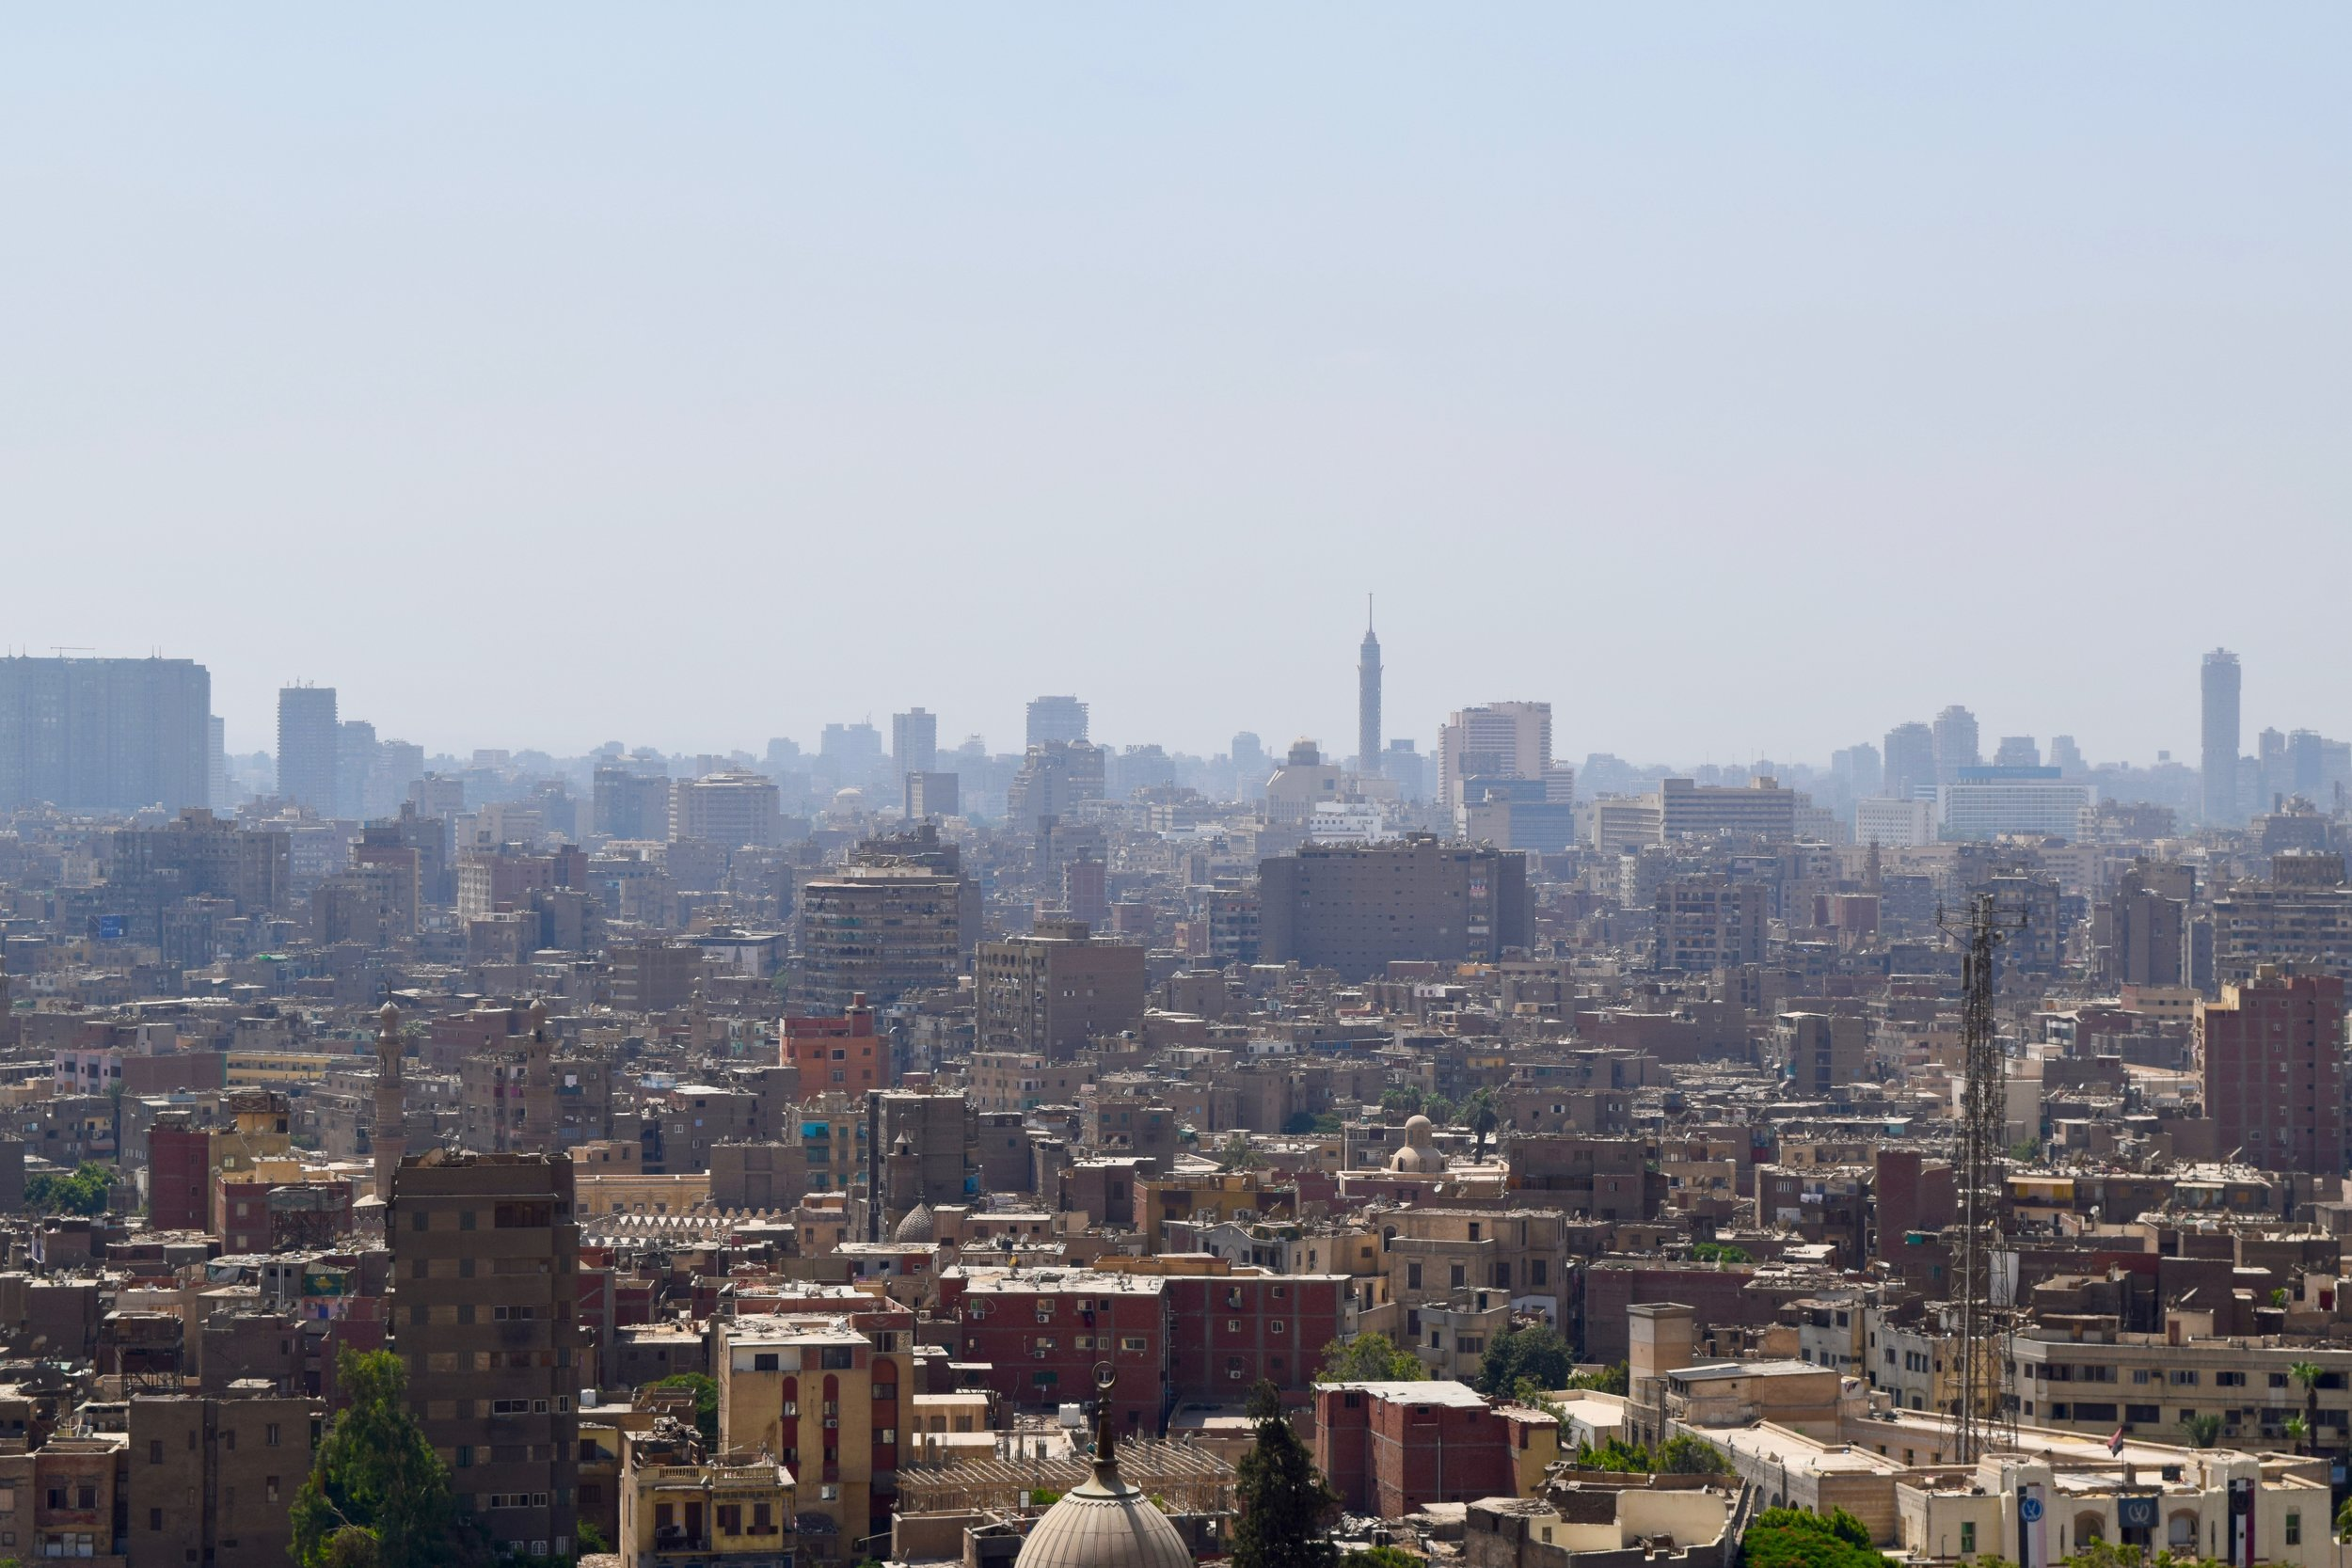 View of Cairo from the Citadel of Saladin